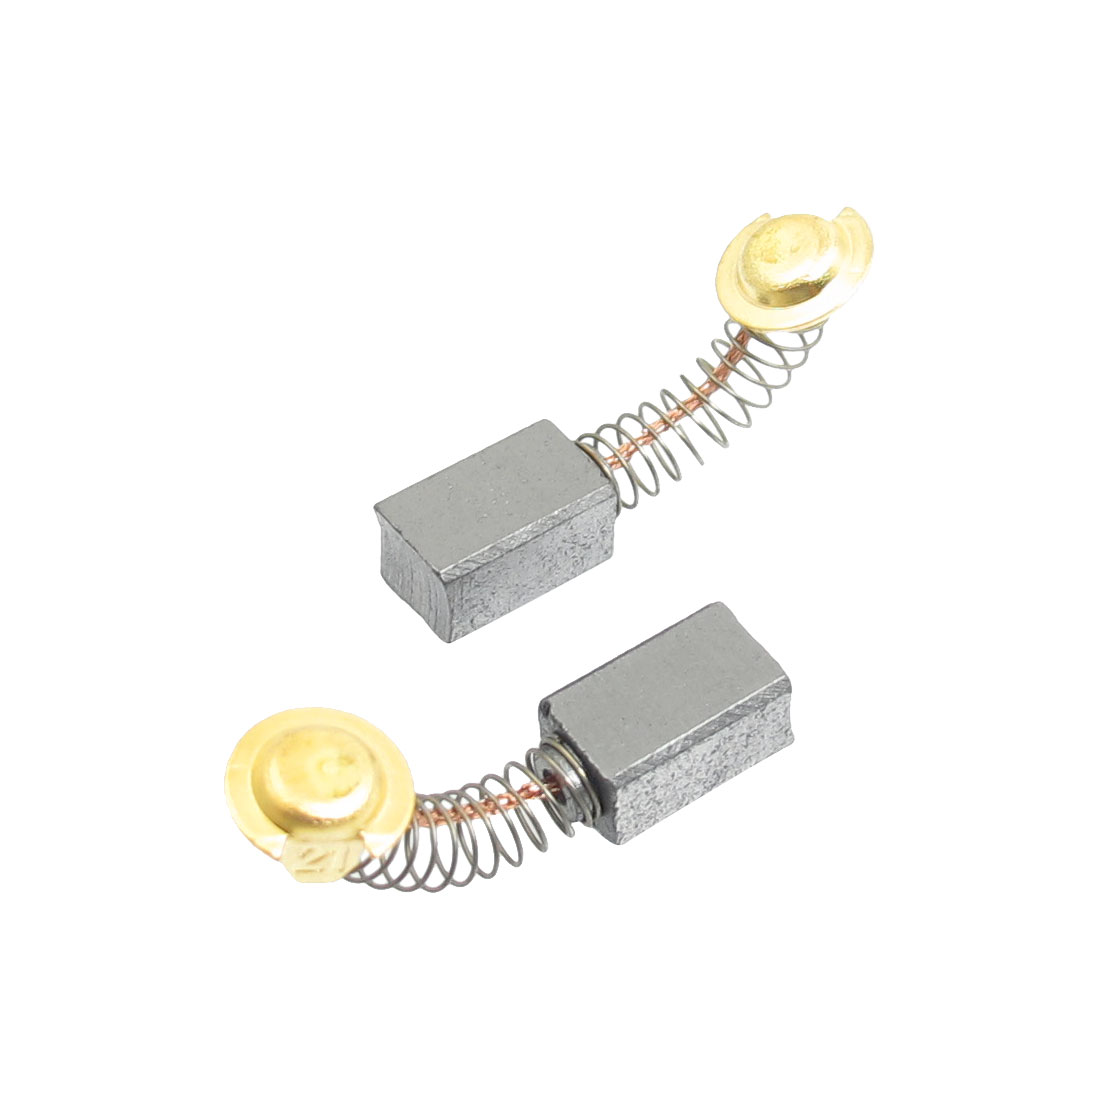 2 Pcs Electric Drill Spring Type 12.5 x 7.5 x 6.6mm Carbon Brushes